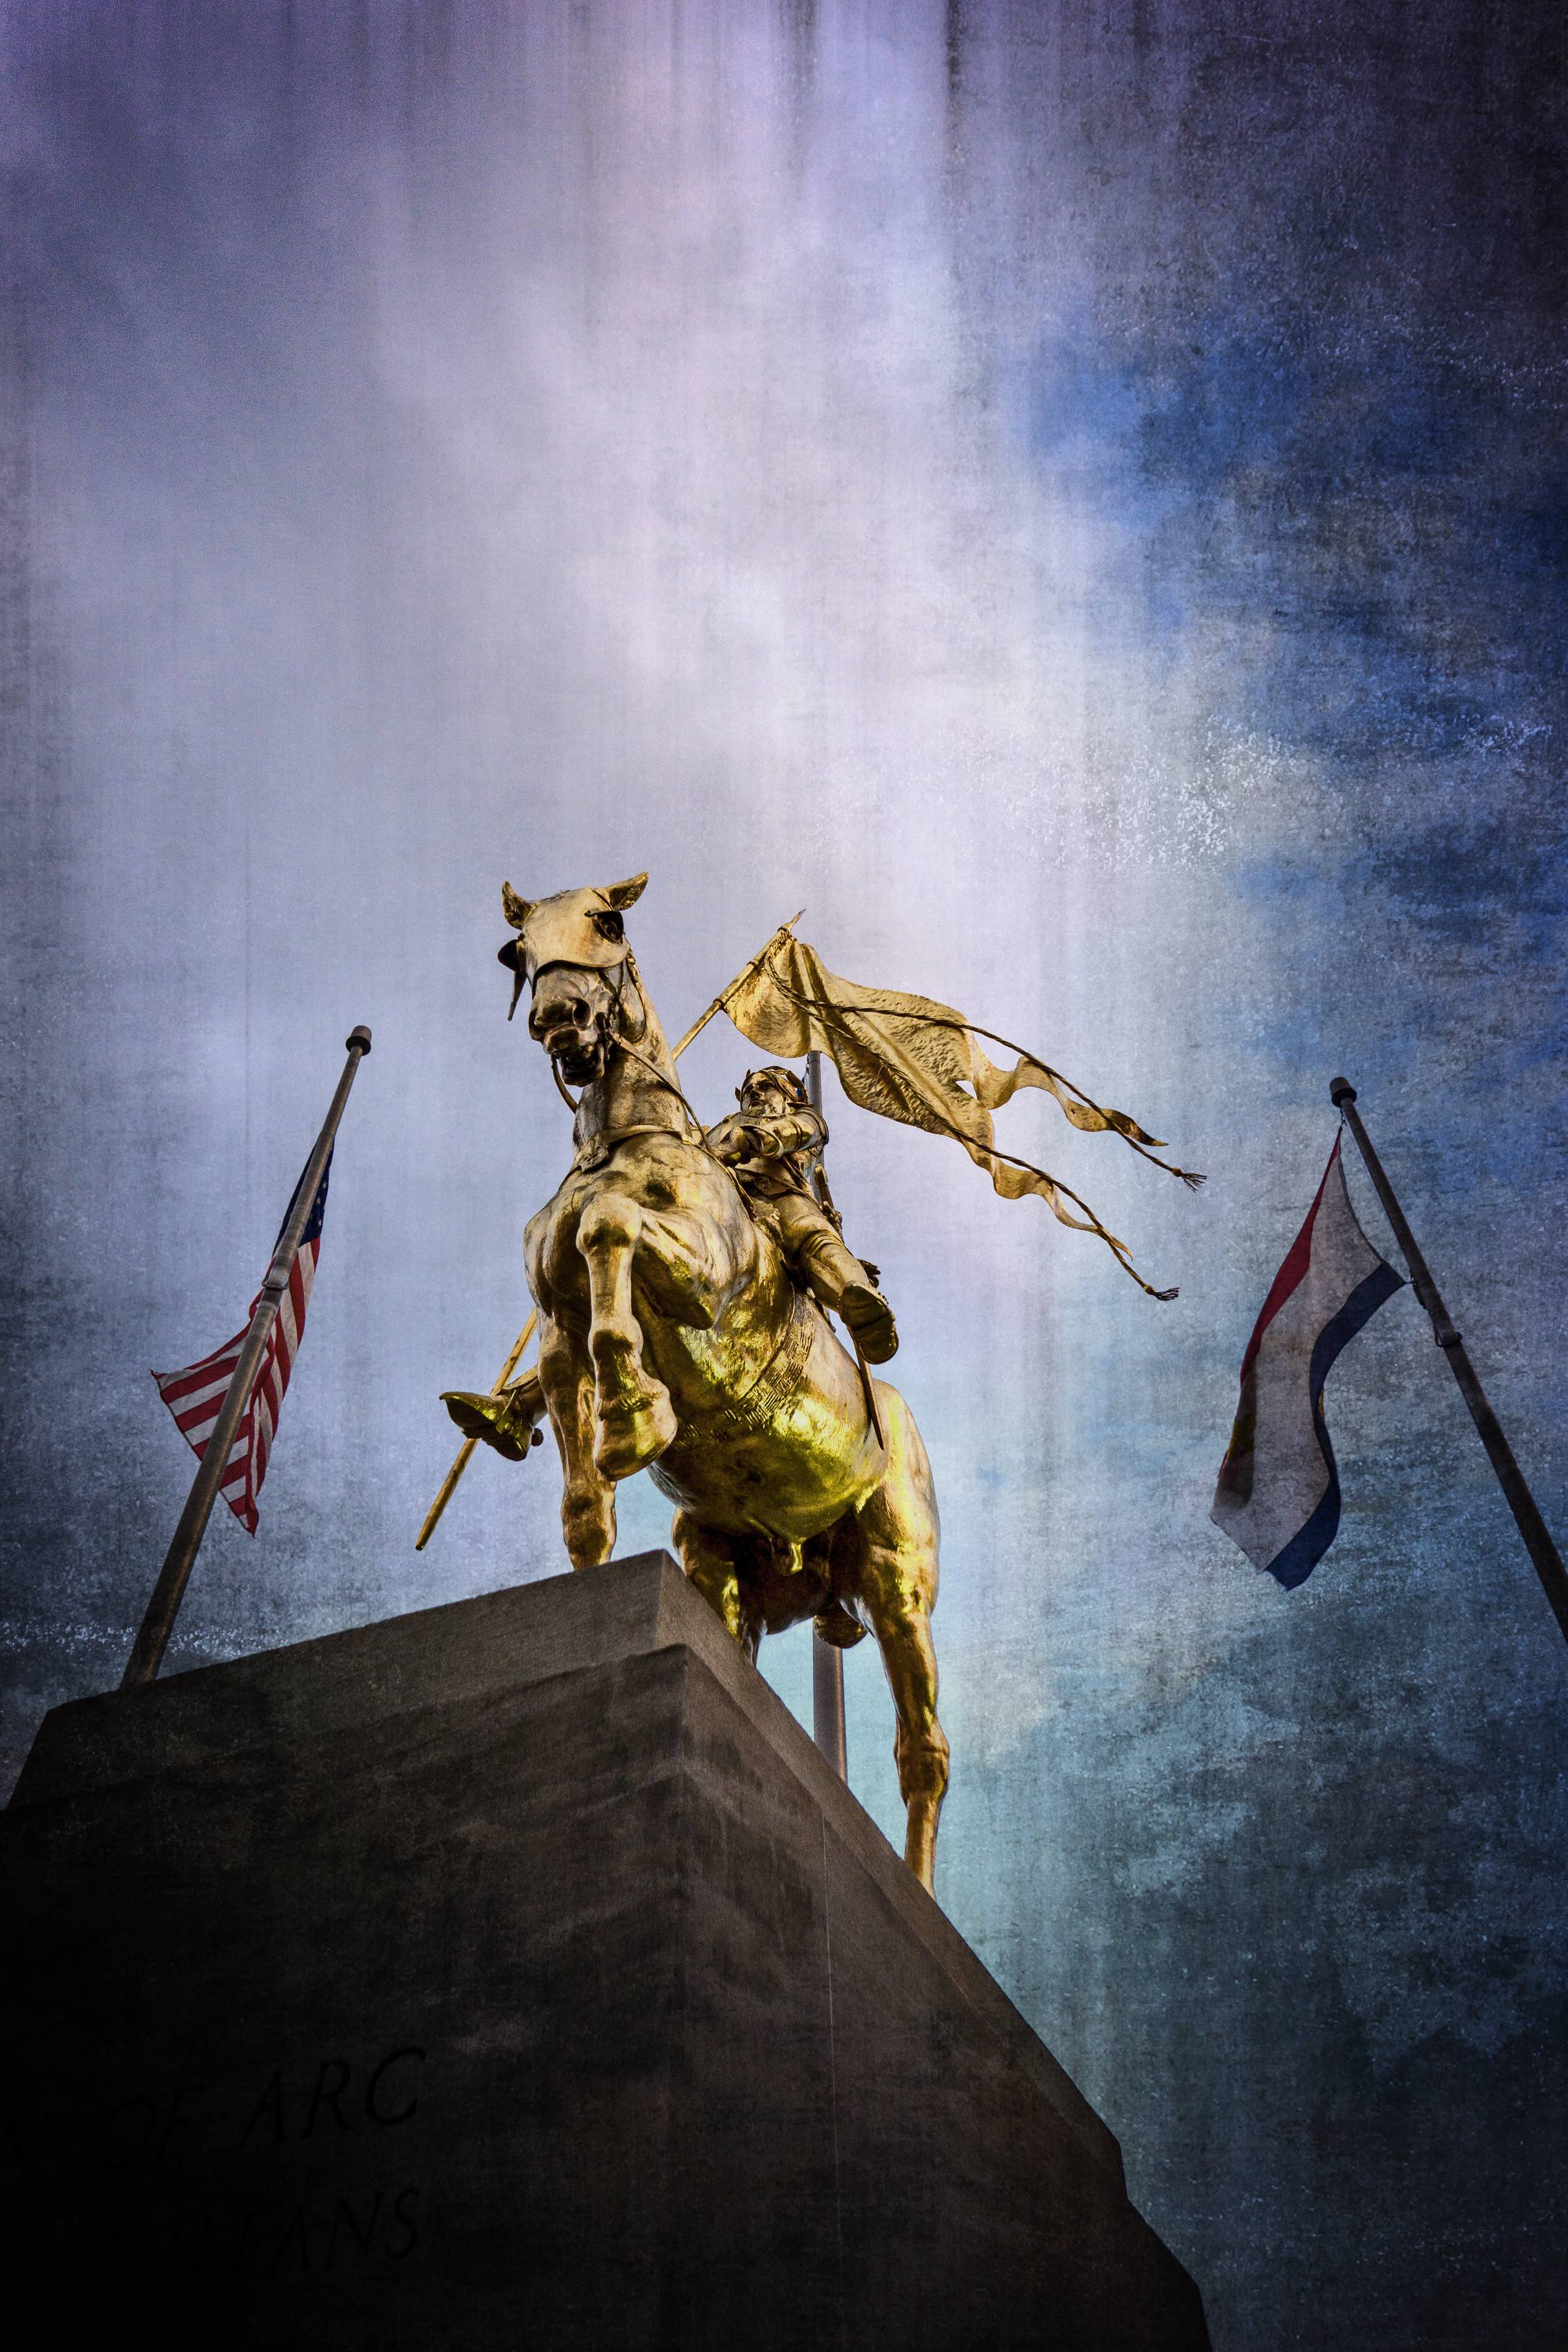 St. Joan of Arc near The French Market. Little post production.